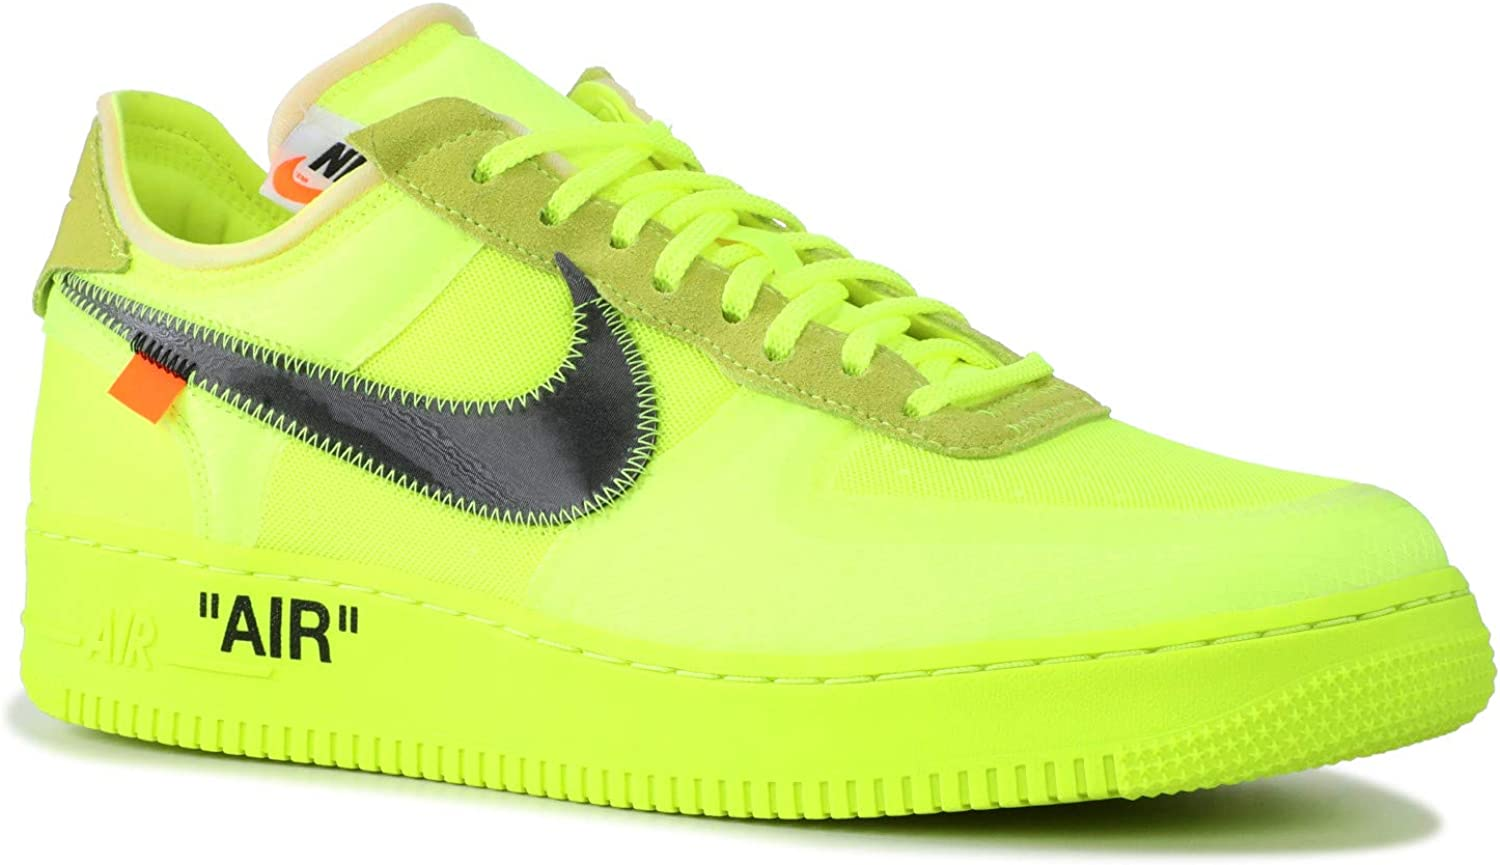 Nike The 10 Air Force 1 Low 'off White' AO4606 700: Amazon